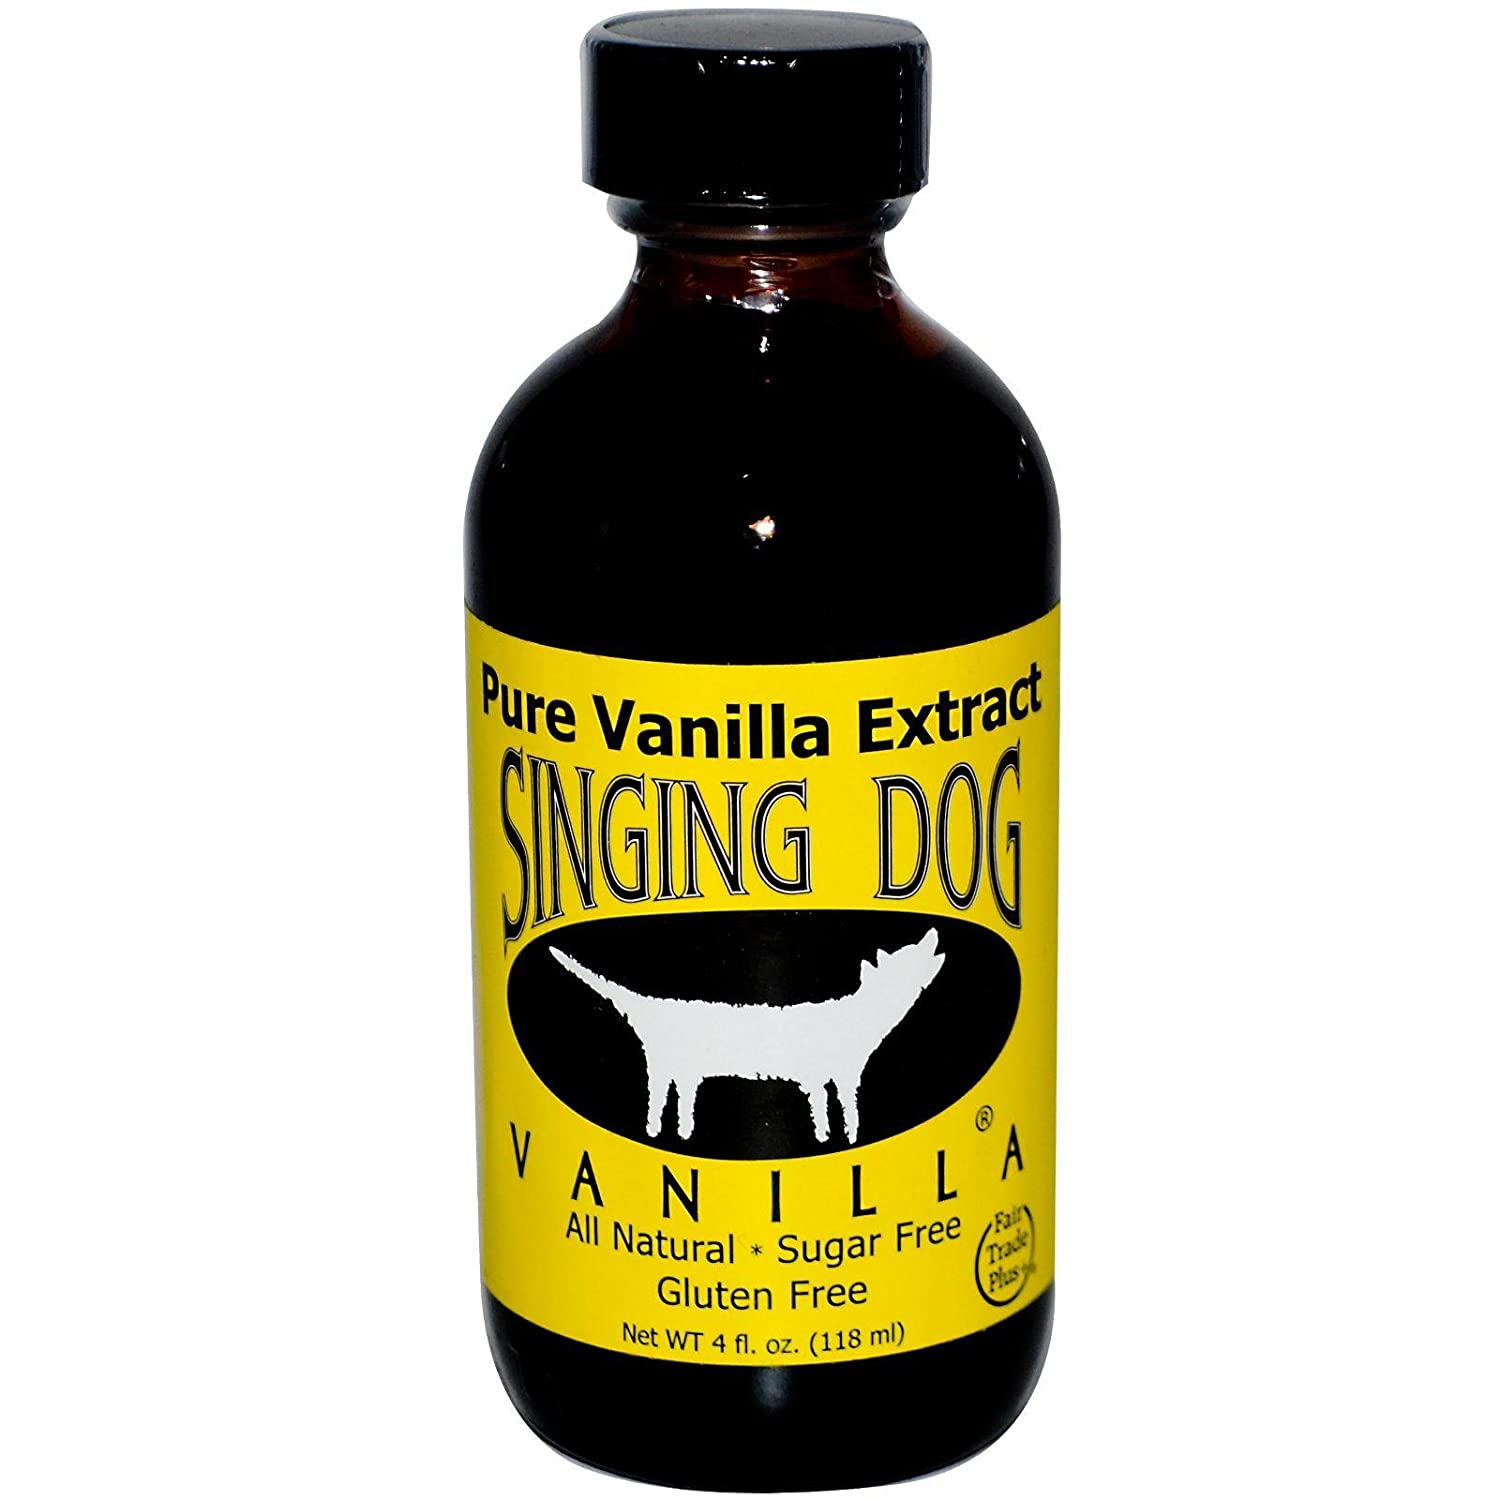 VAINILLA NATURAL 100% PURA - gluten free - 59 mL - SINGING DOG